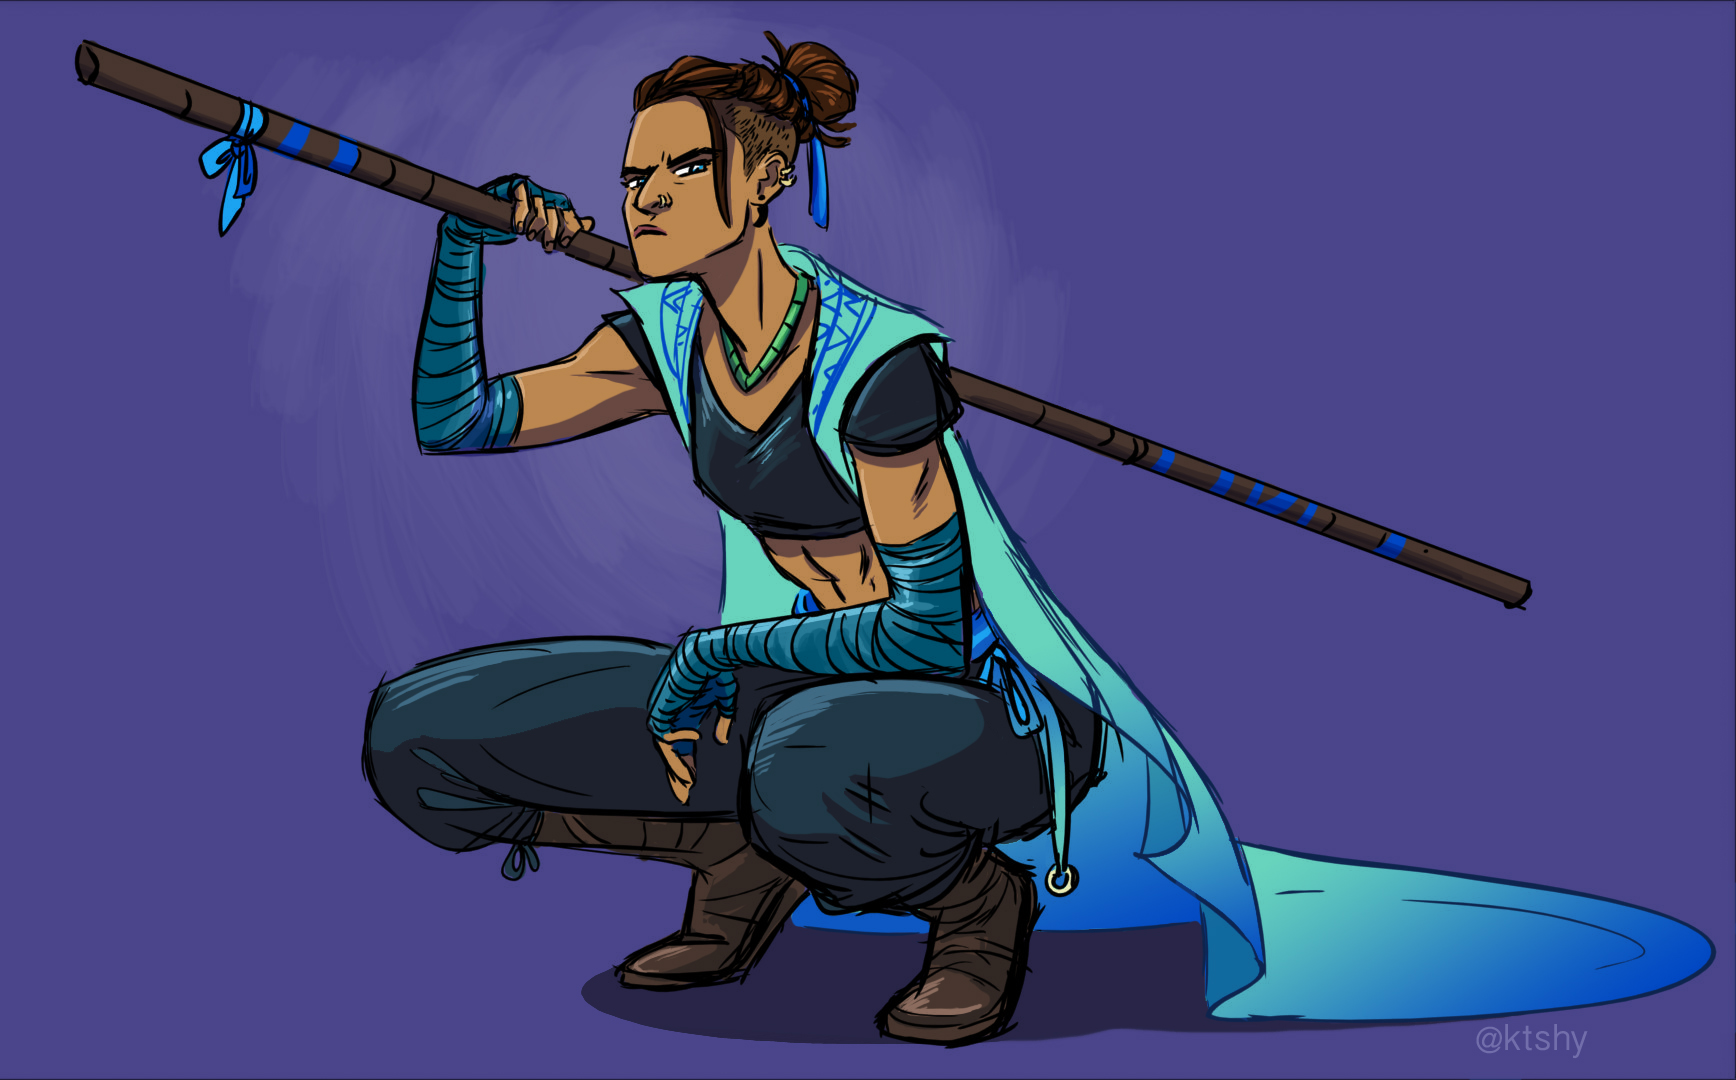 Beau from Critical Role.